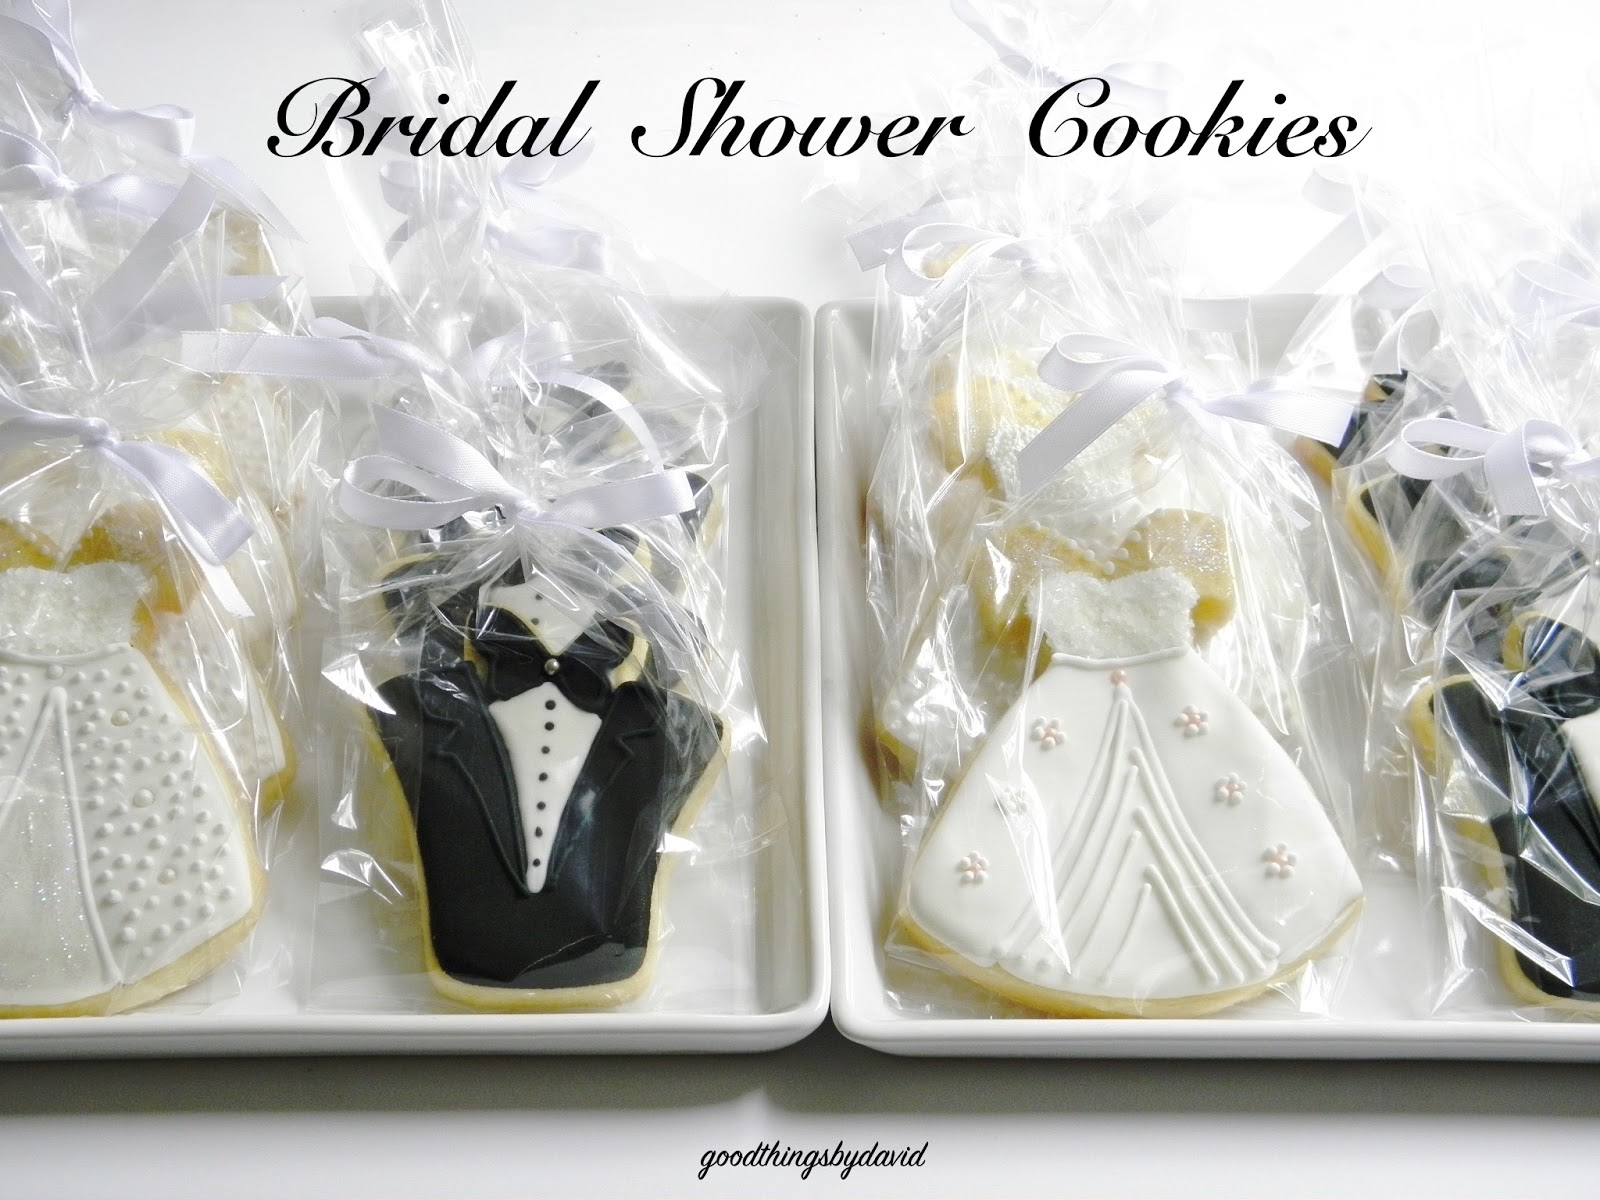 Although I Have Never Created Any Wedding Cookies Before Do Own Several Cookie Cutters Perfect For Such An Occasion